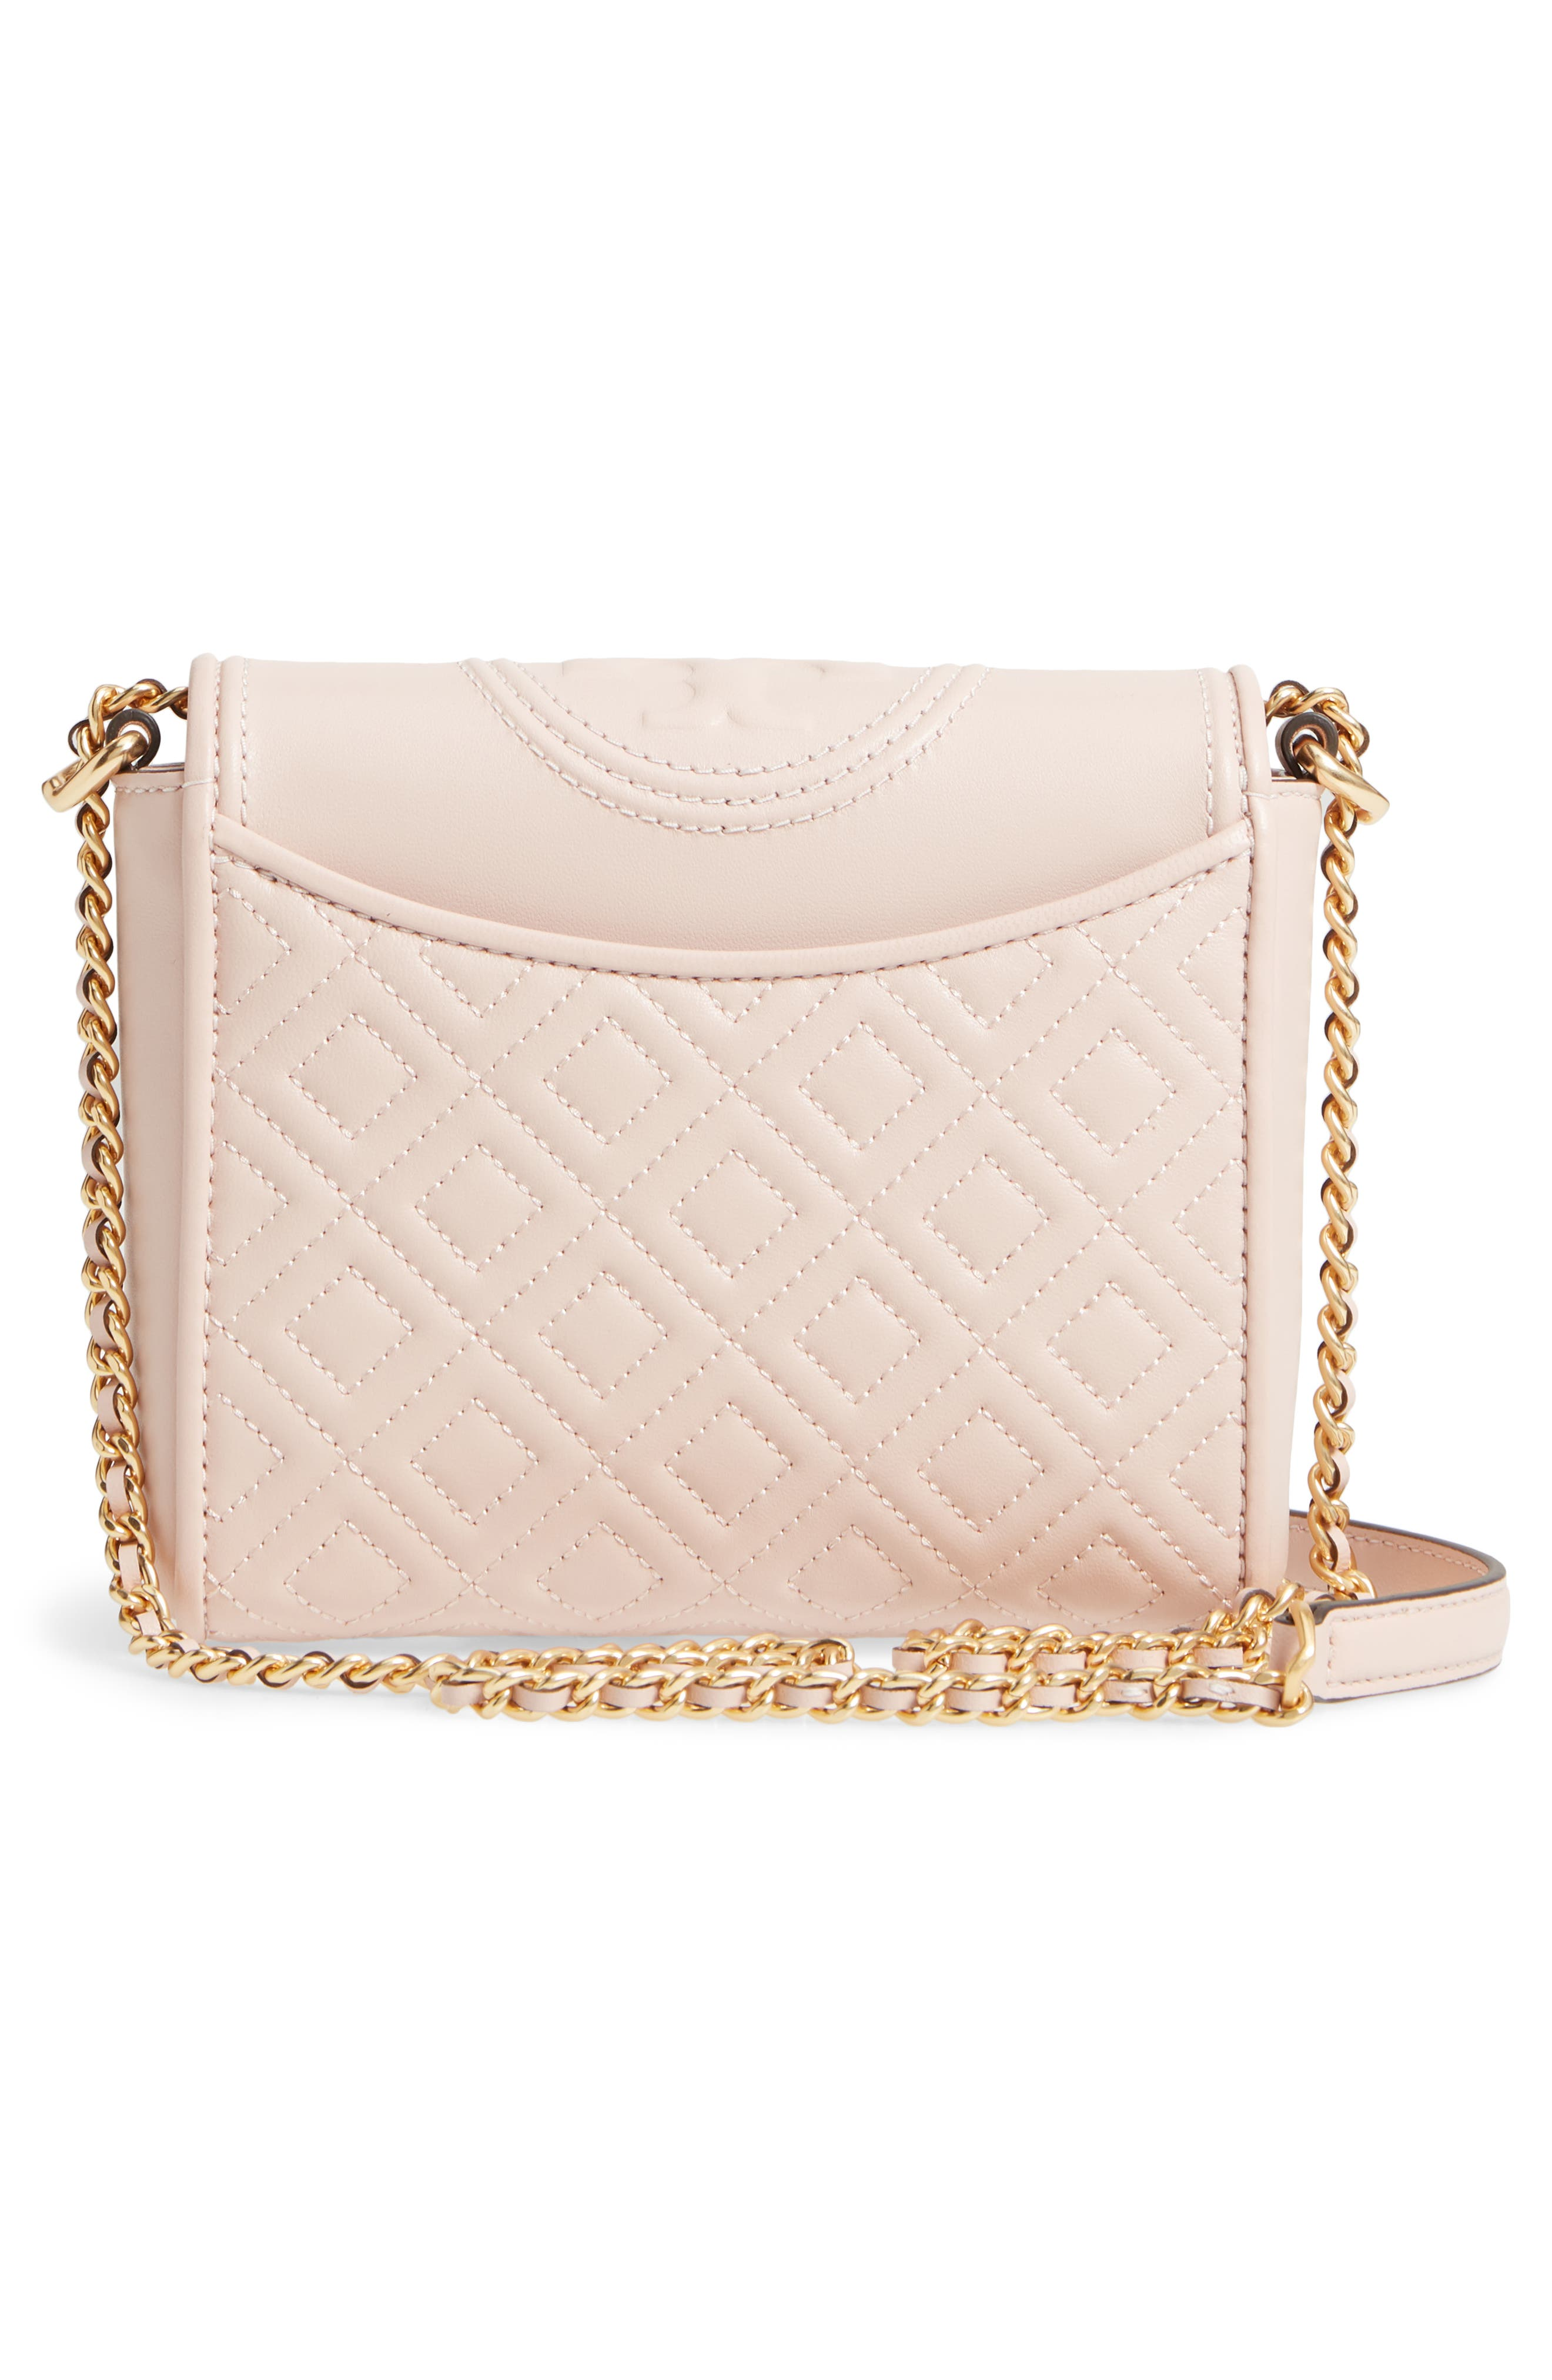 Fleming Quilted Leather Crossbody Bag,                             Alternate thumbnail 4, color,                             Shell Pink